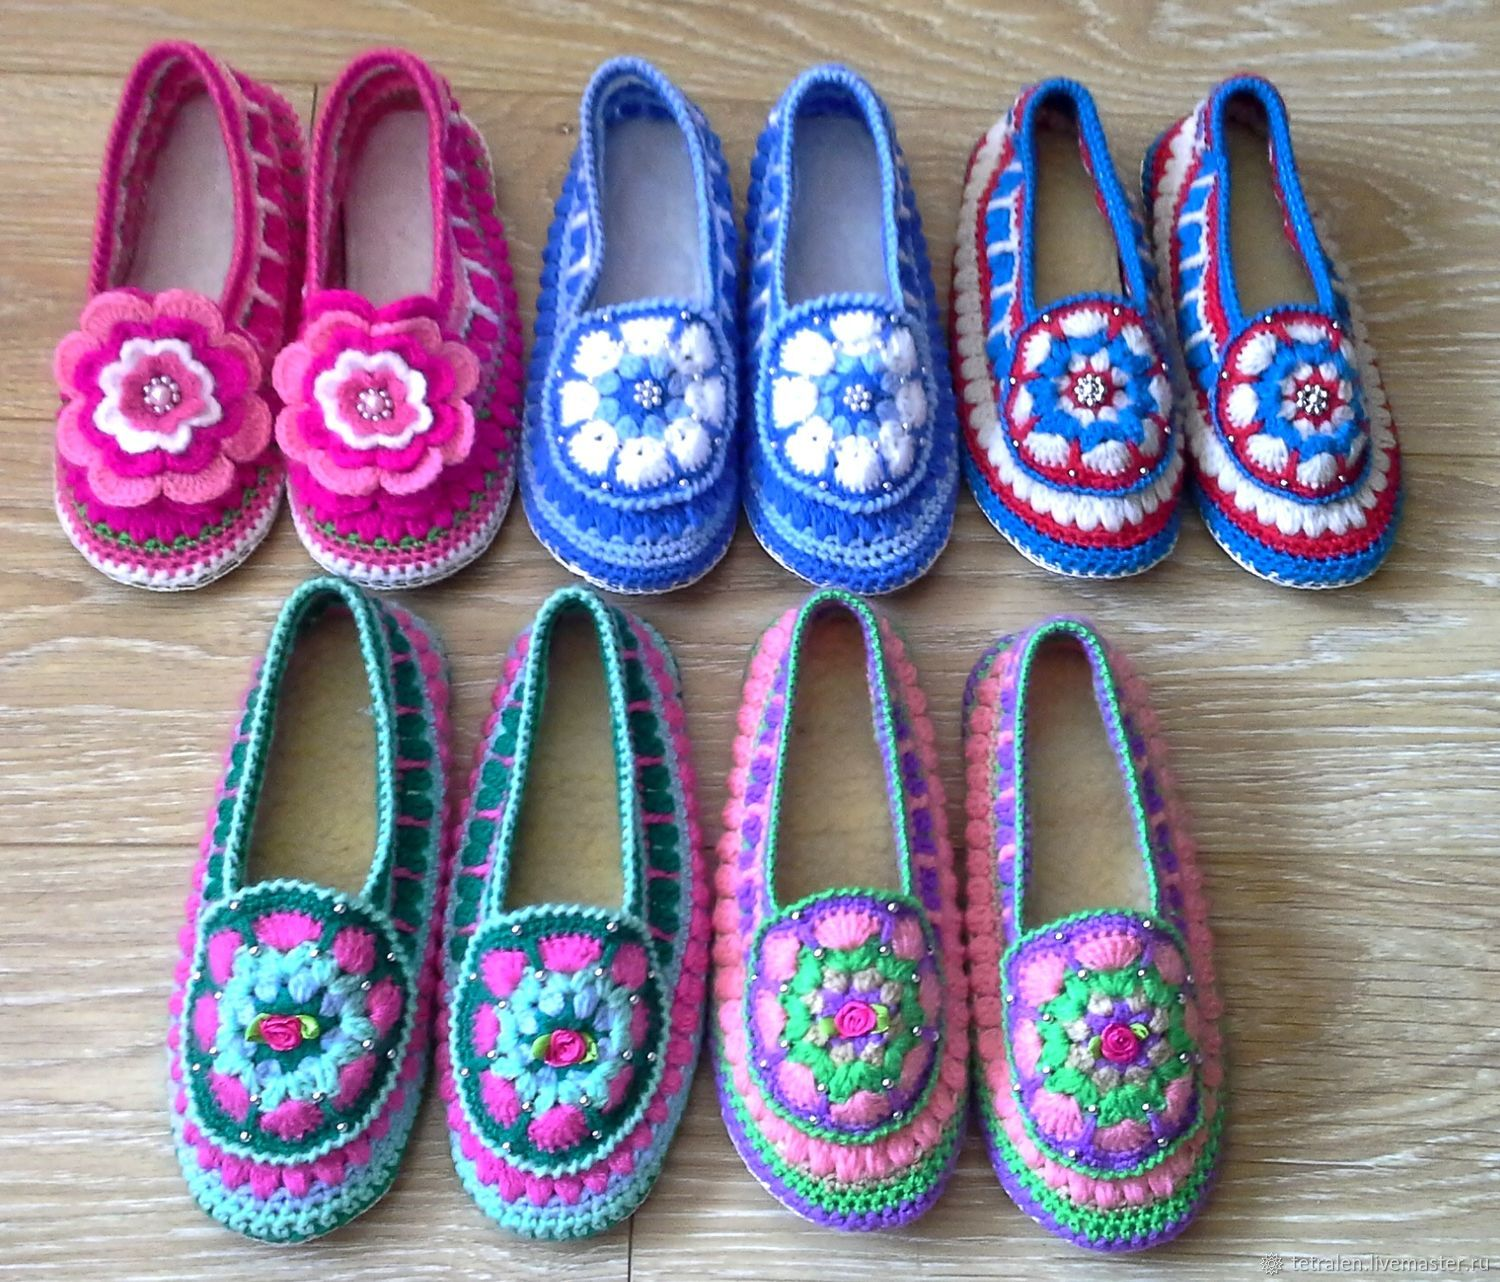 b6790152f02e52 Handmade Shoes handmade. Knitted Slippers Thumbelina. Knitted stuff from  Svetlana. My Livemaster.